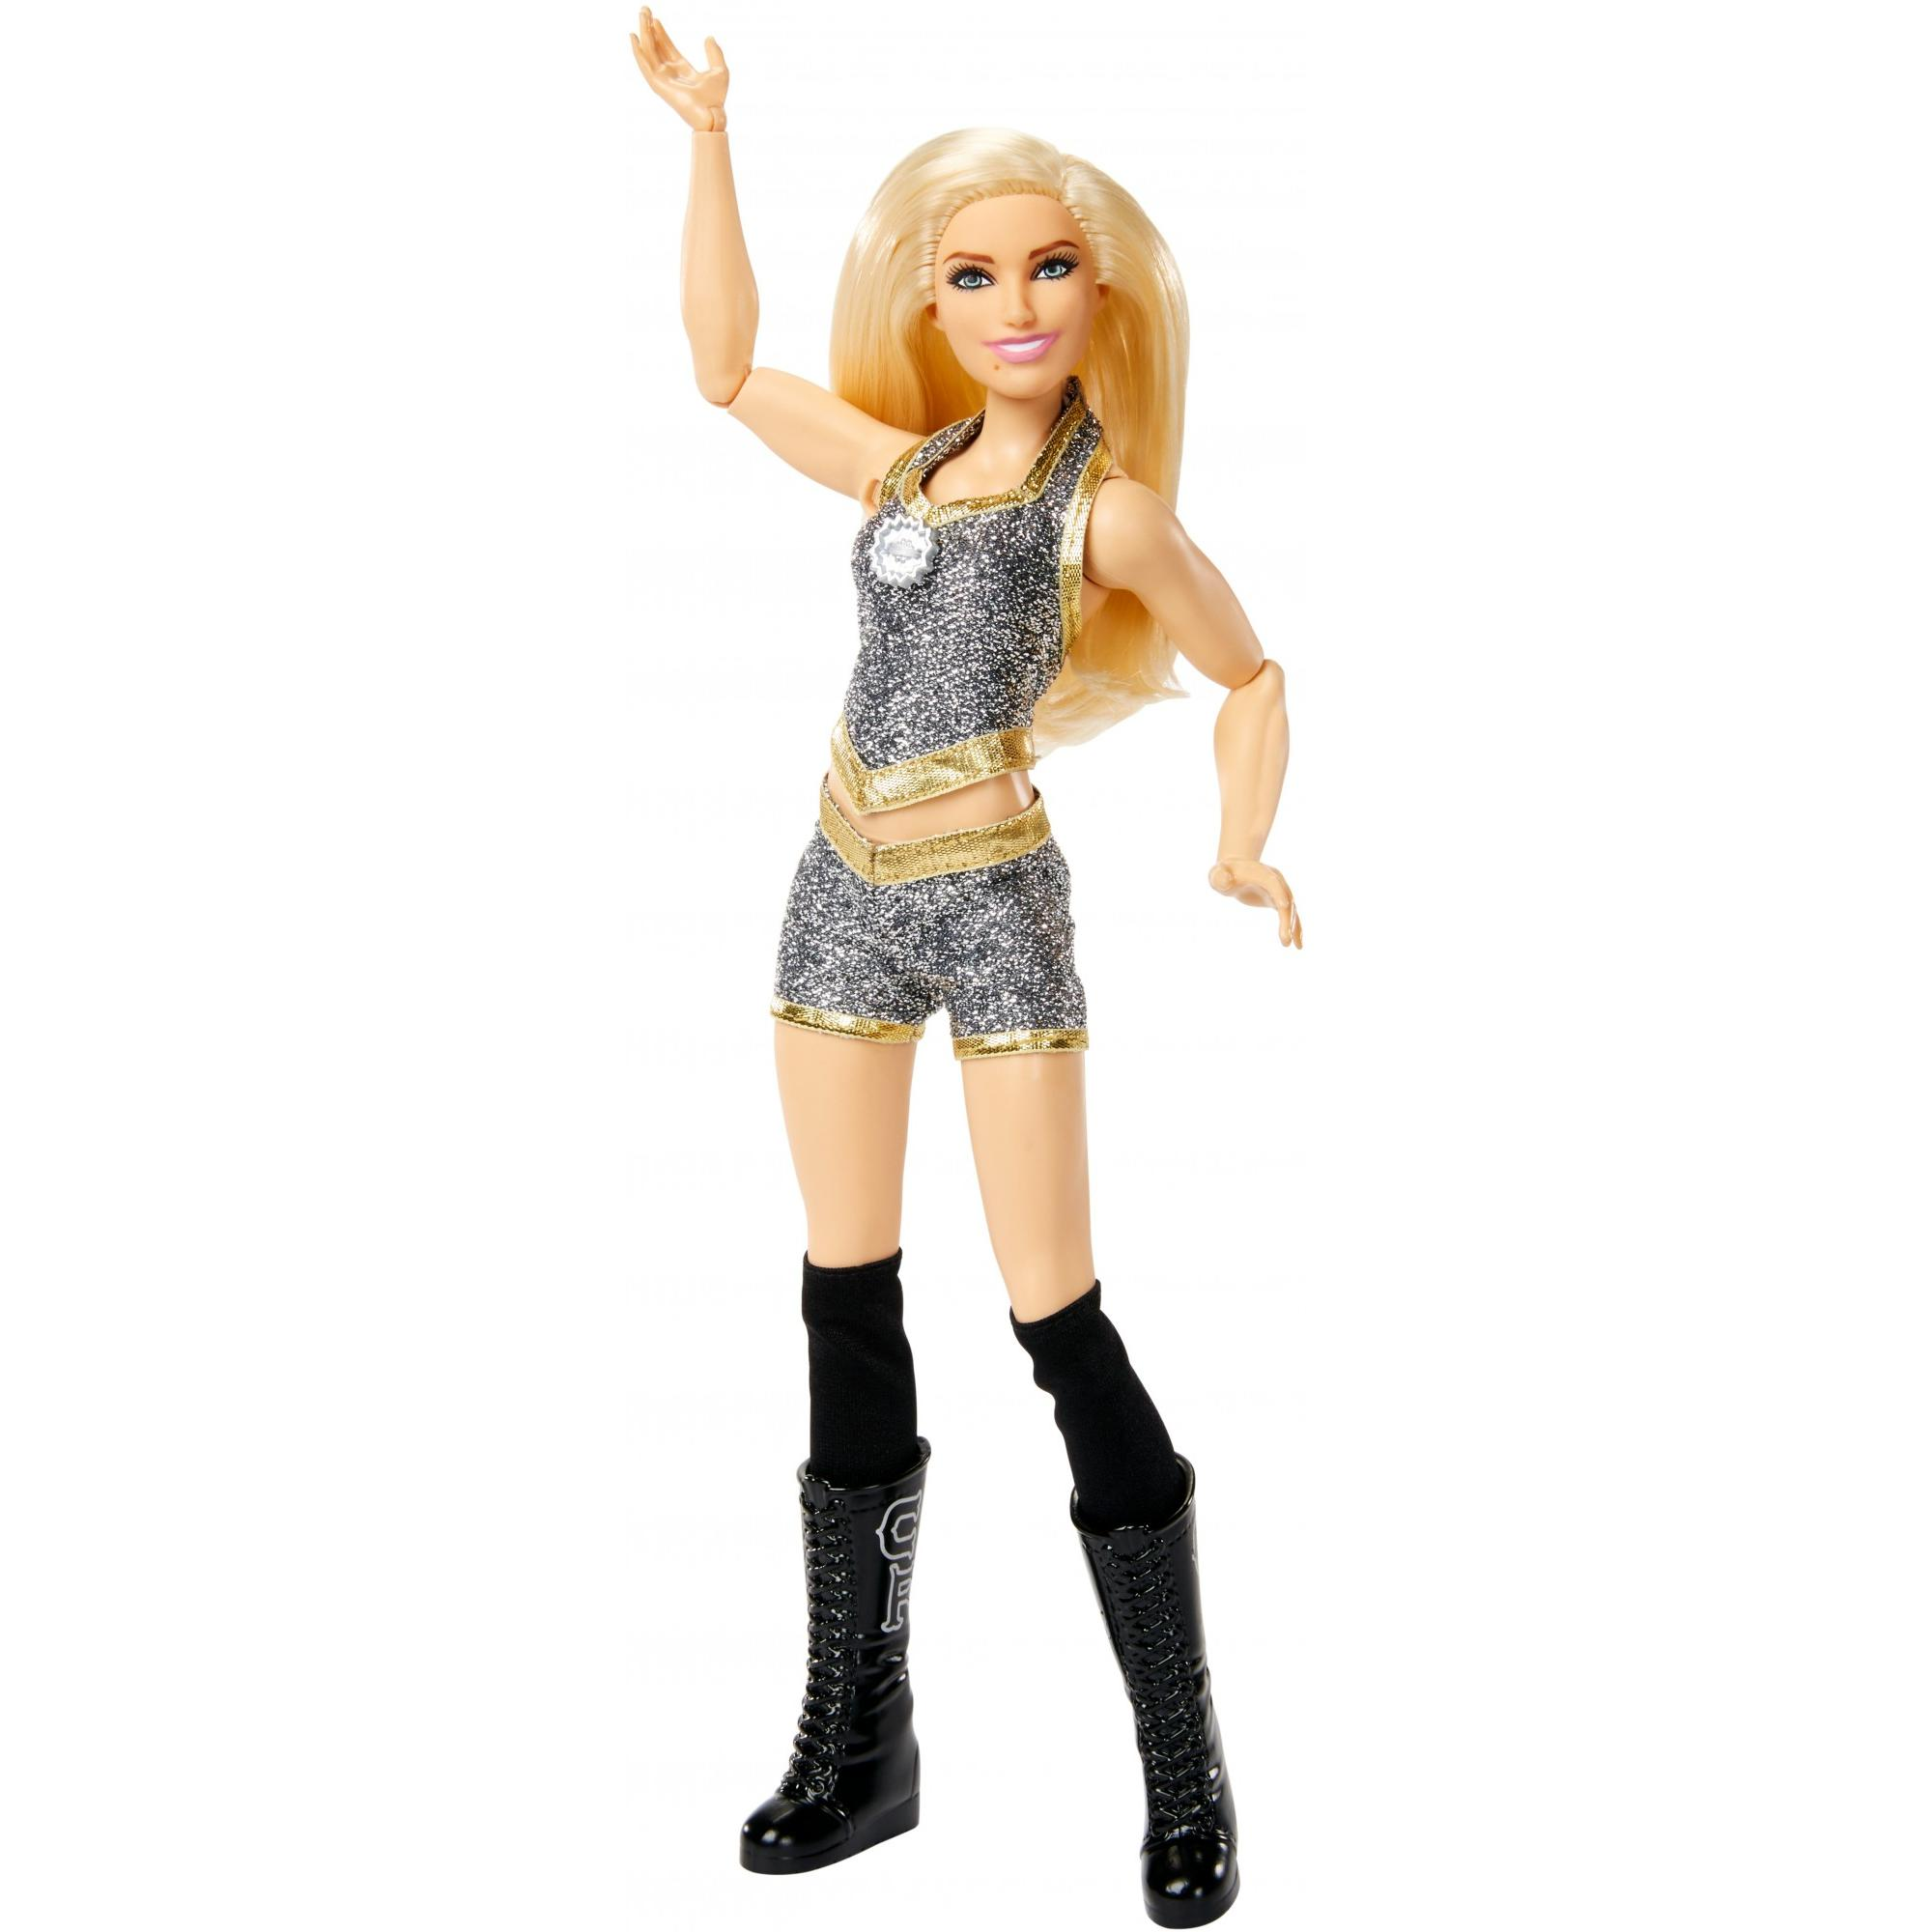 WWE Superstars Charlotte Flair 12-inch Posable Doll Plus 1 Outfit